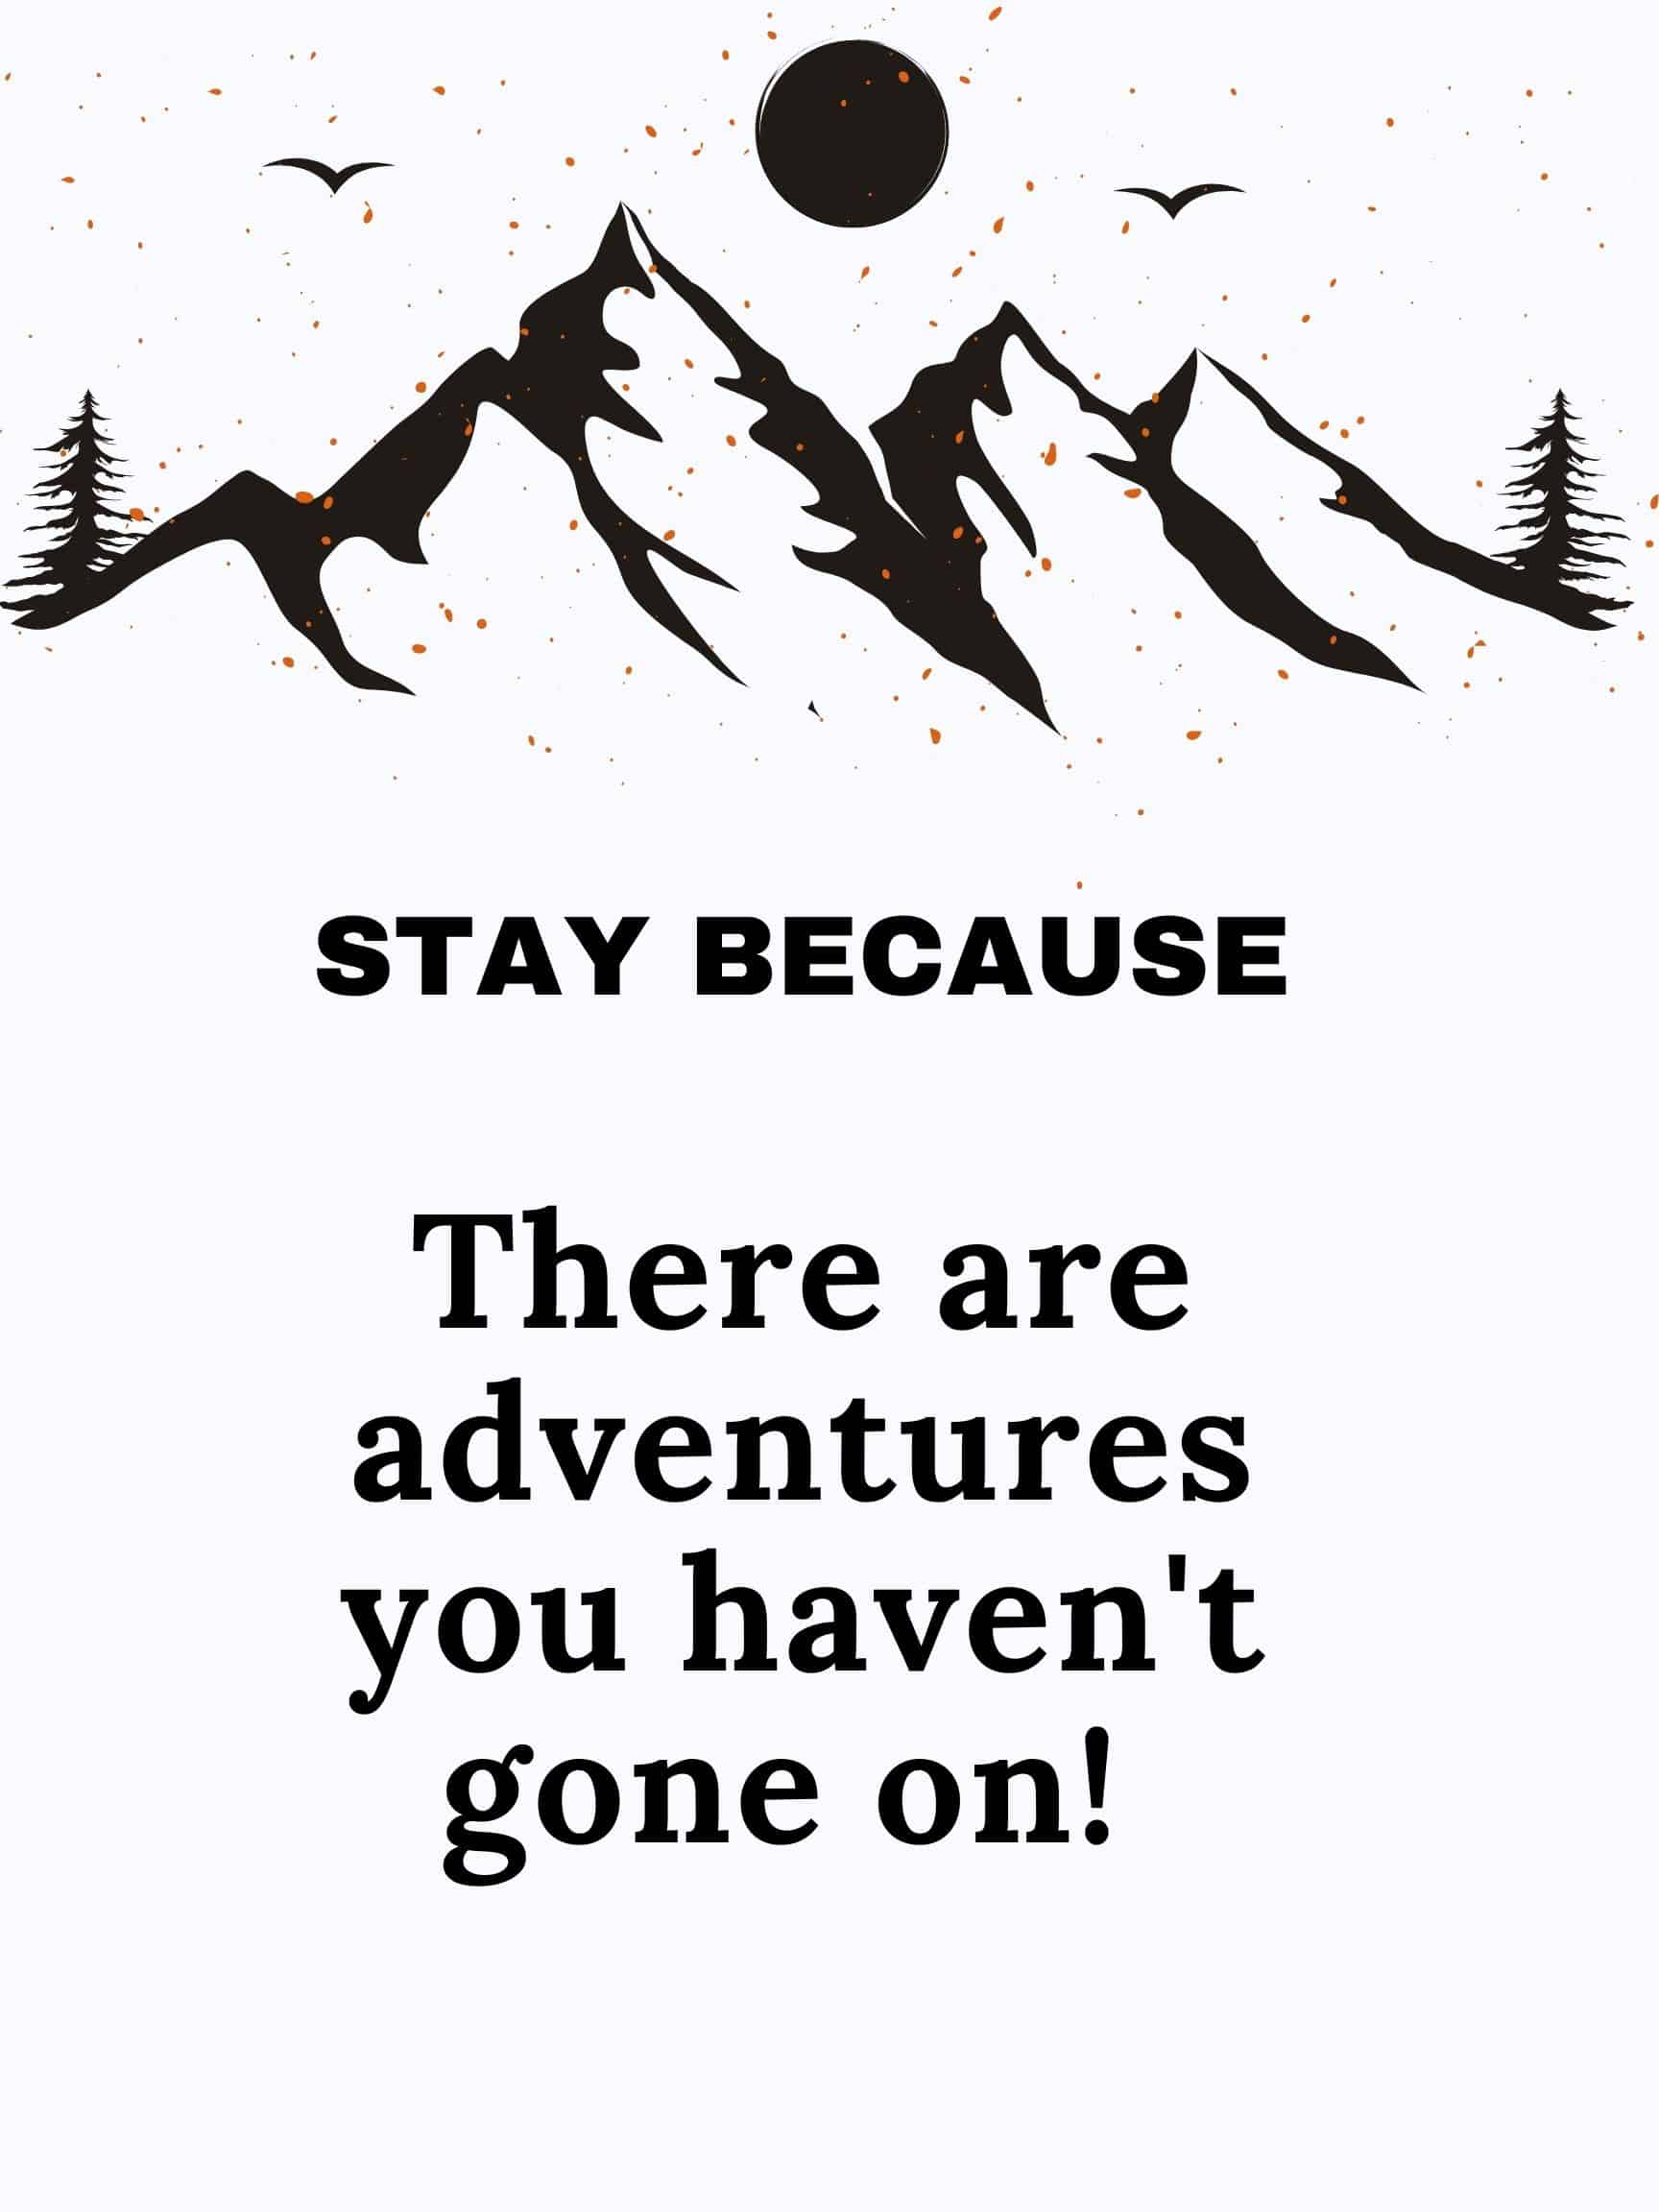 Stay because there are adventures you haven't gone on #StayBecause